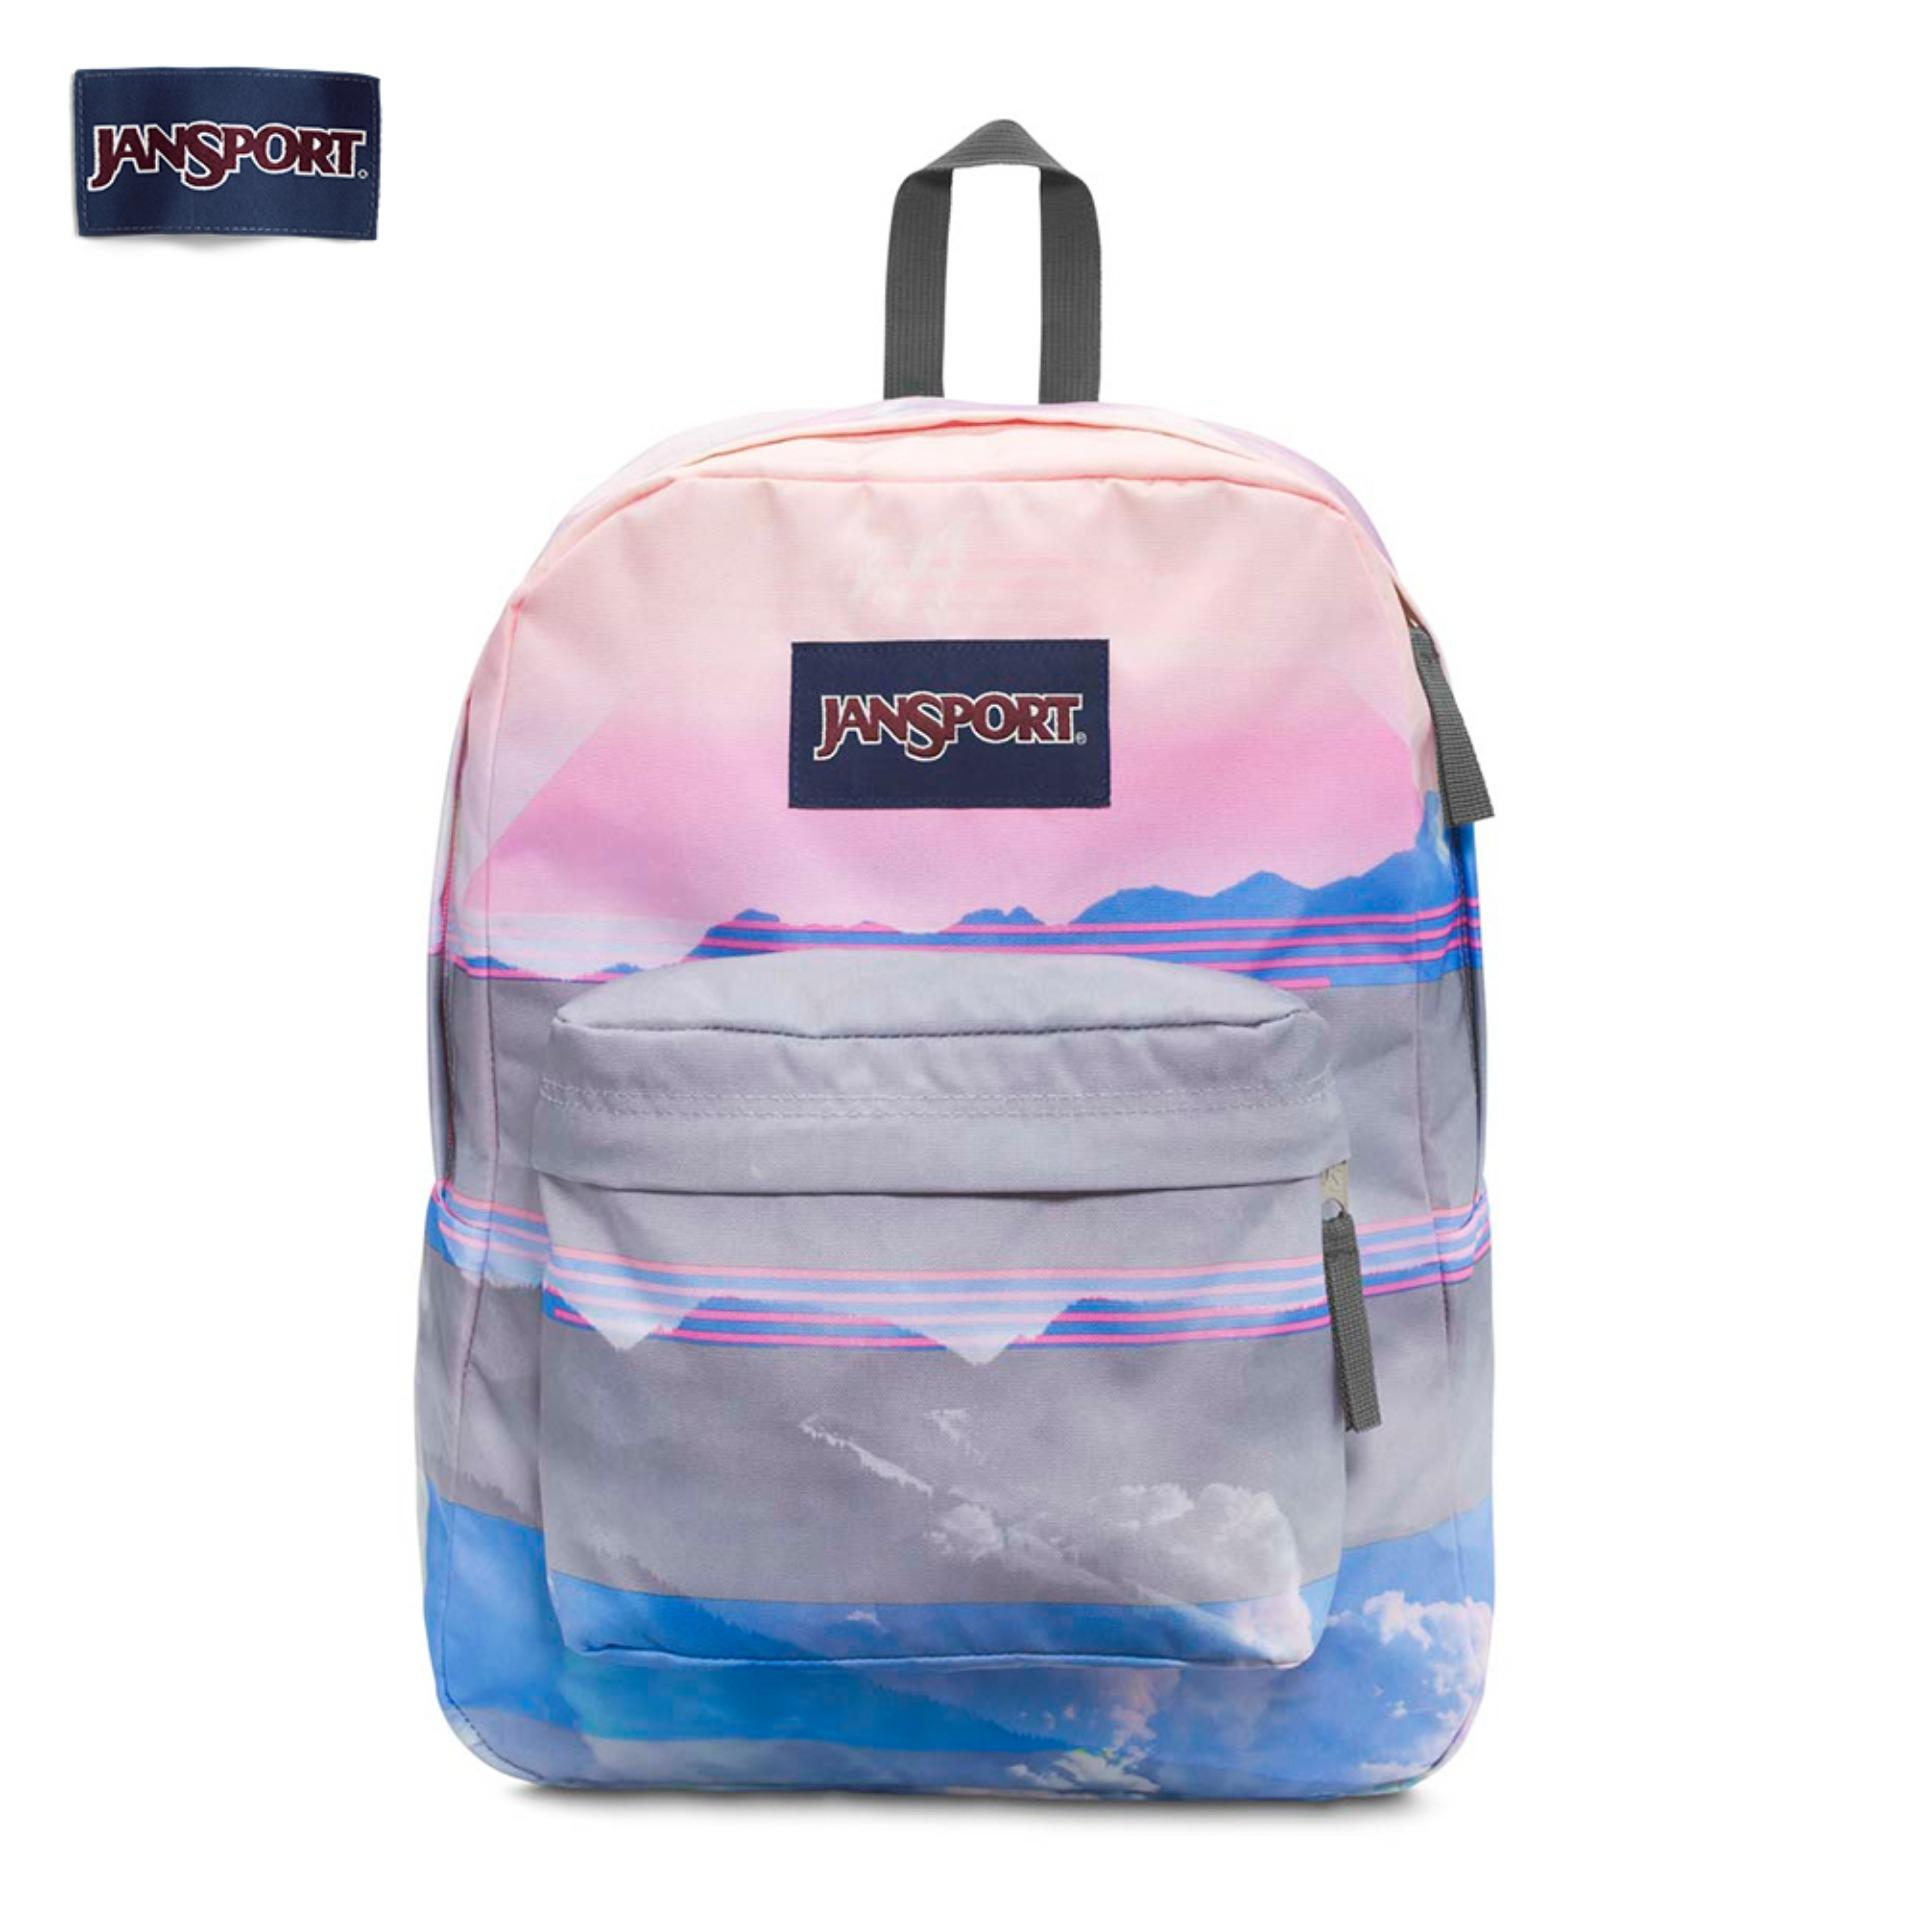 JanSport Superbreak 25L Backpack Price Tracking Source · JanSport Unisex HIGH STAKES Backpack